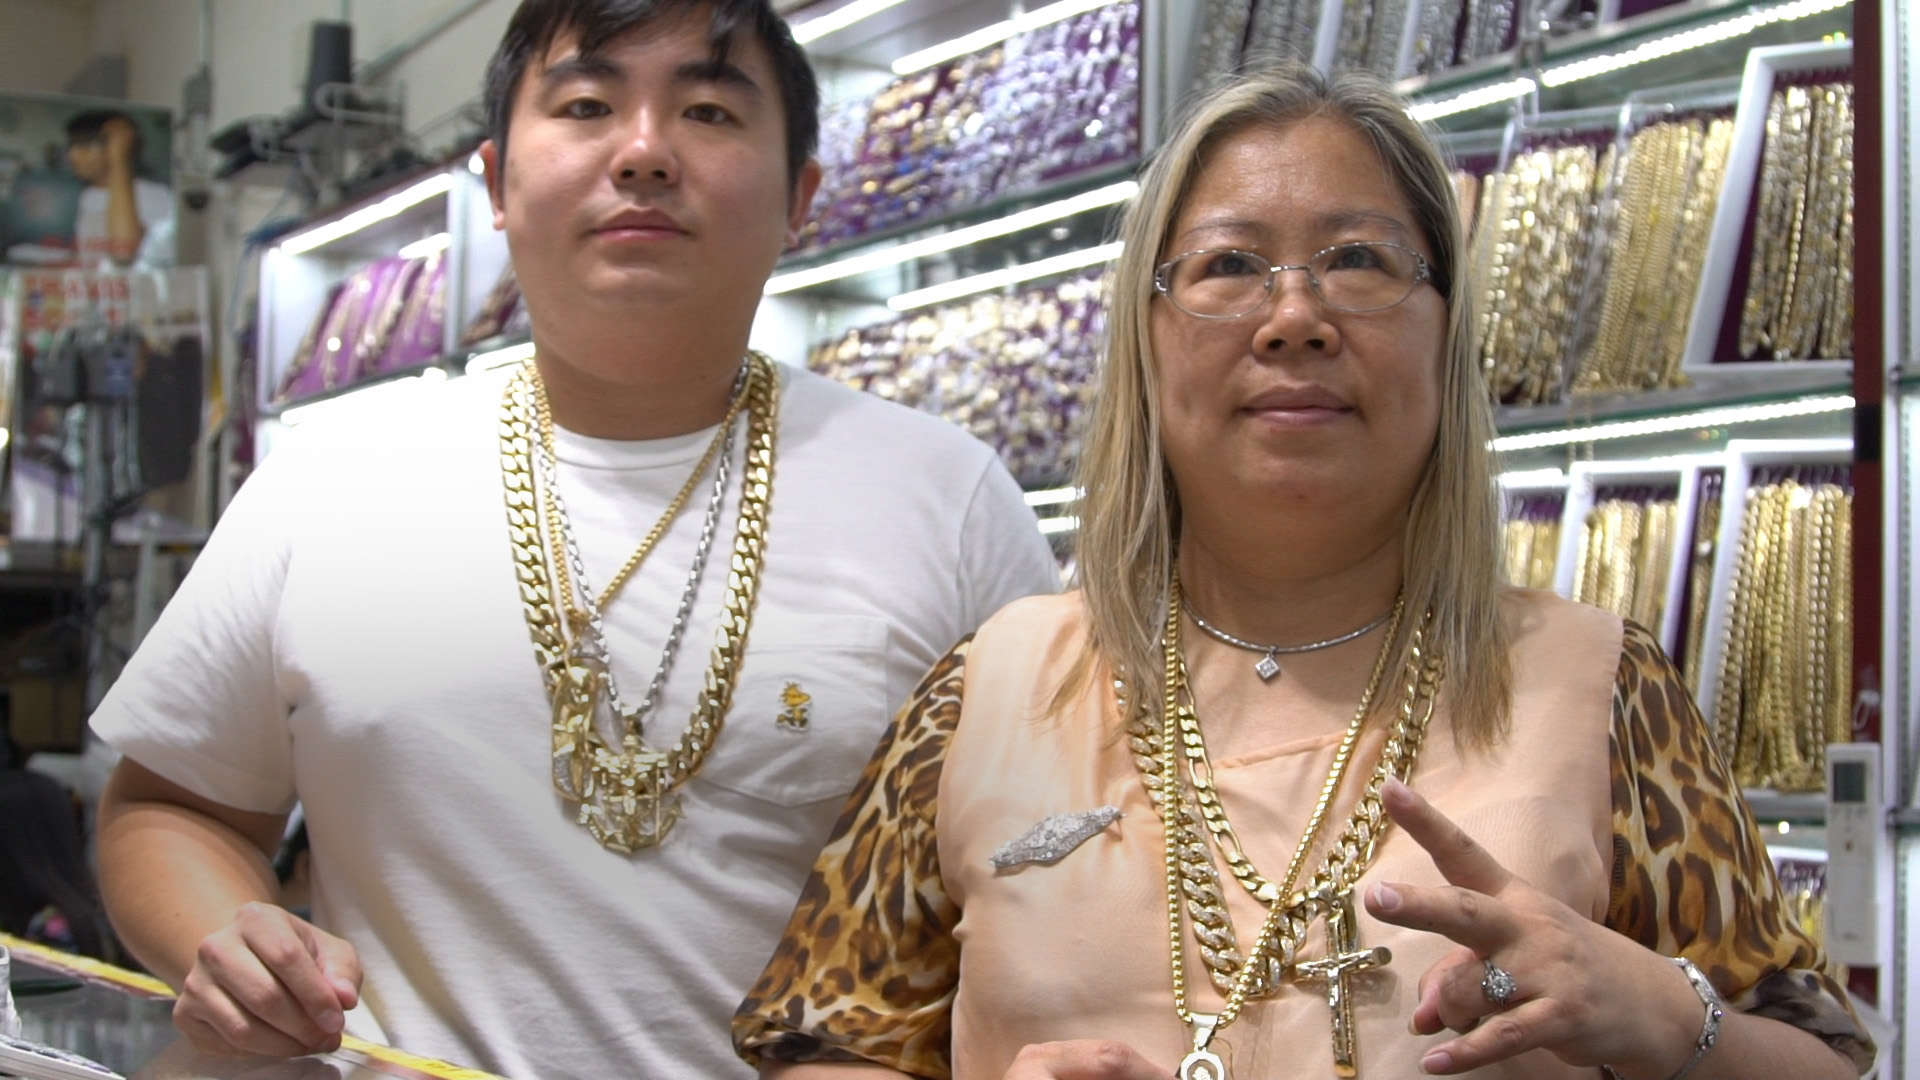 A$AP Eva and her son in their jewelry store